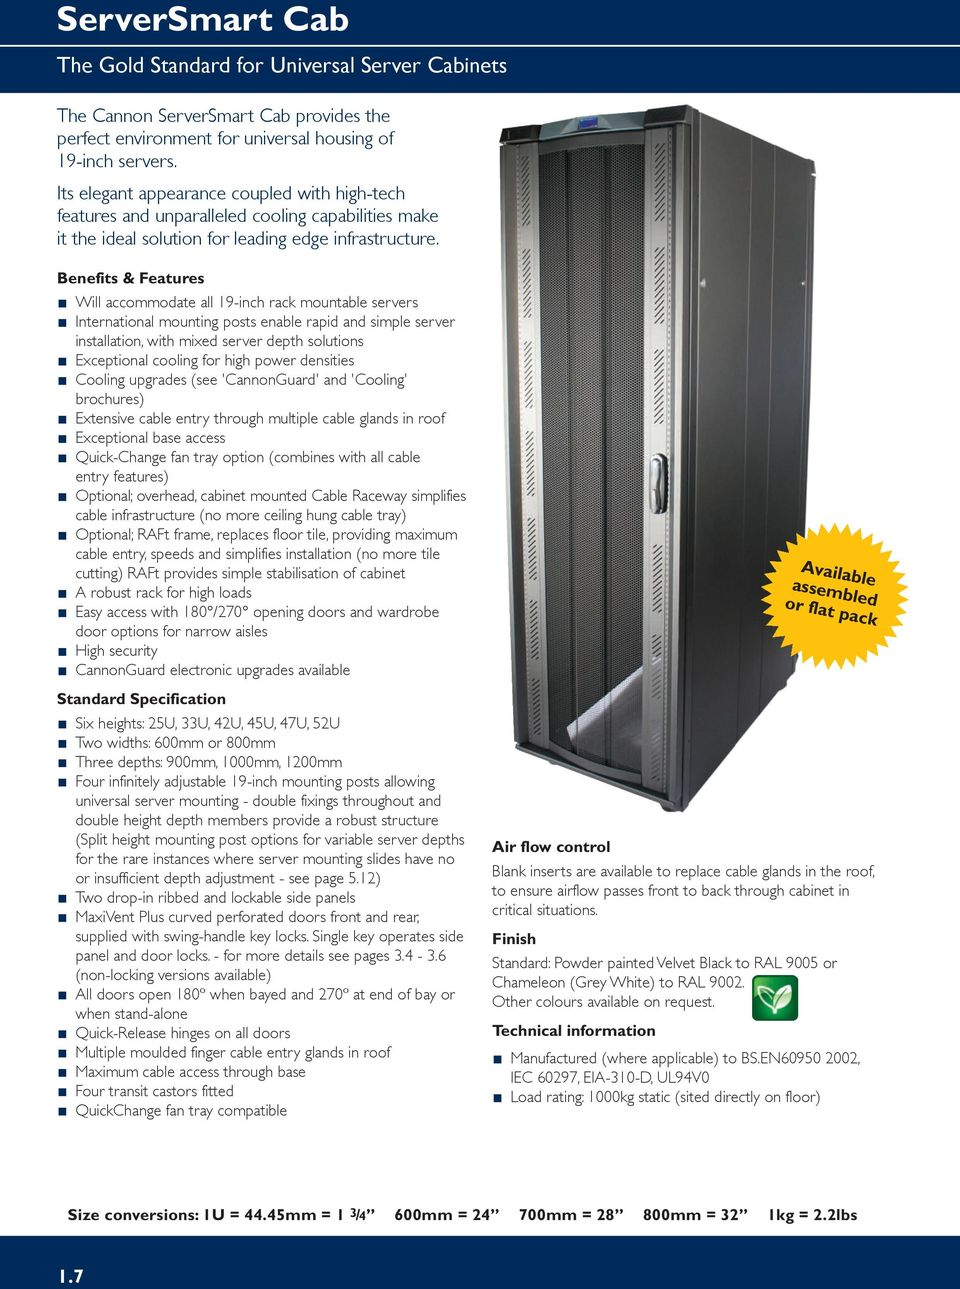 Benefits & Features Will accommodate all 19-inch rack mountable servers International mounting posts enable rapid and simple server installation, with mixed server depth solutions Exceptional cooling